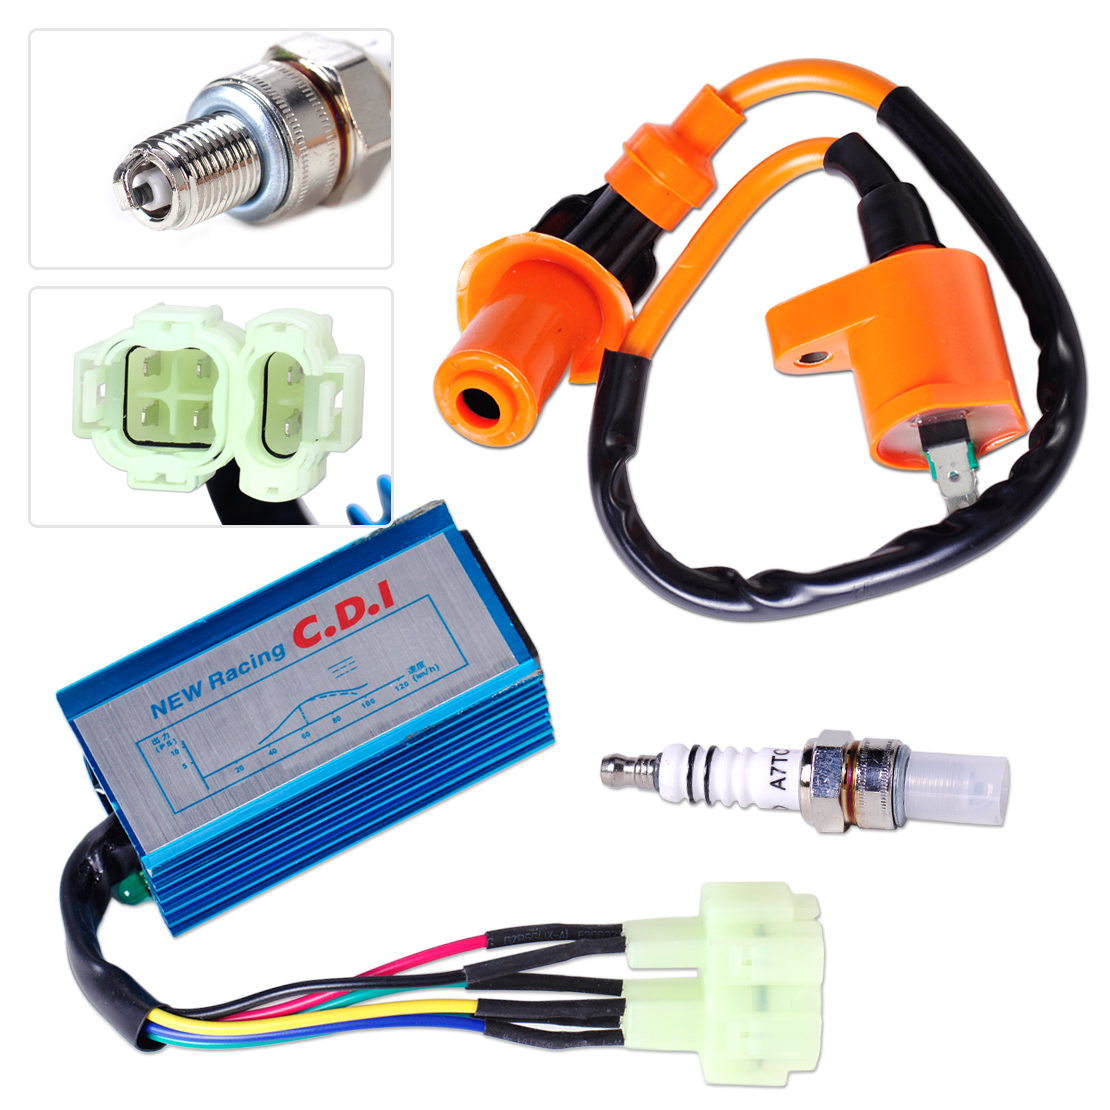 hight resolution of aliexpress com buy dwcx performance ignition coil spark plug wire cdi box for gy6 50cc 90cc 125cc 150cc scooter atv go kart moped dirt bike from